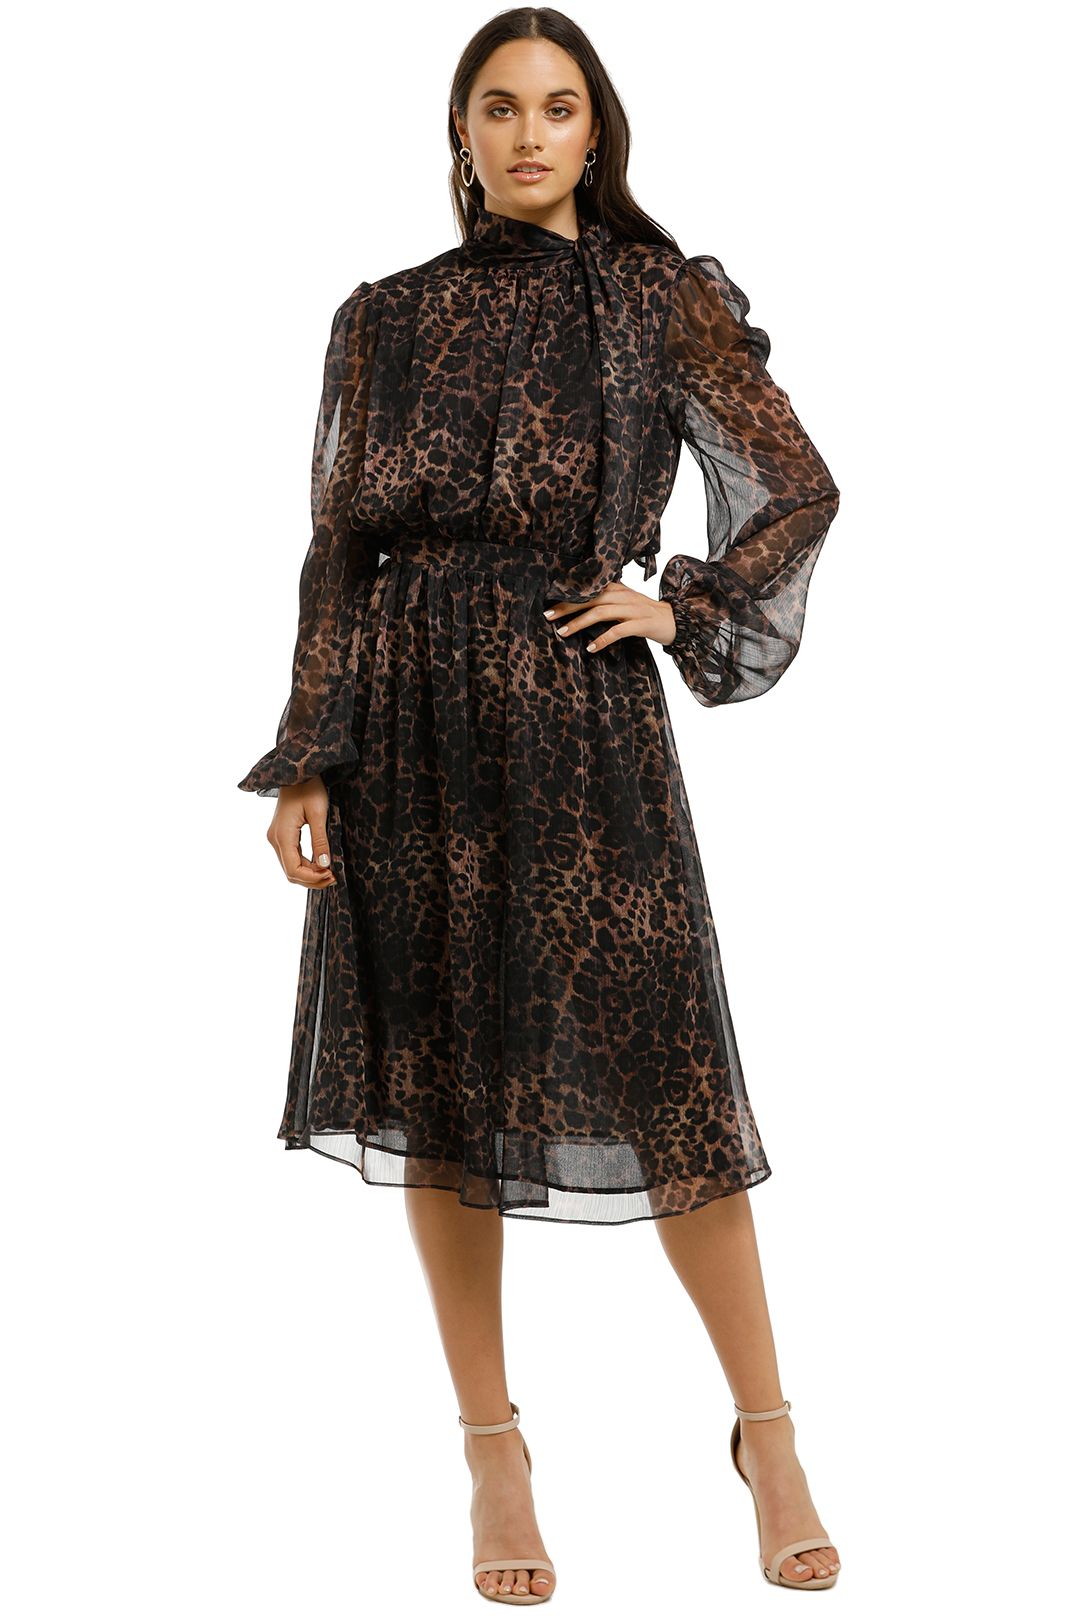 Misha-Collection-Sofia-Dress-Leopard-Front